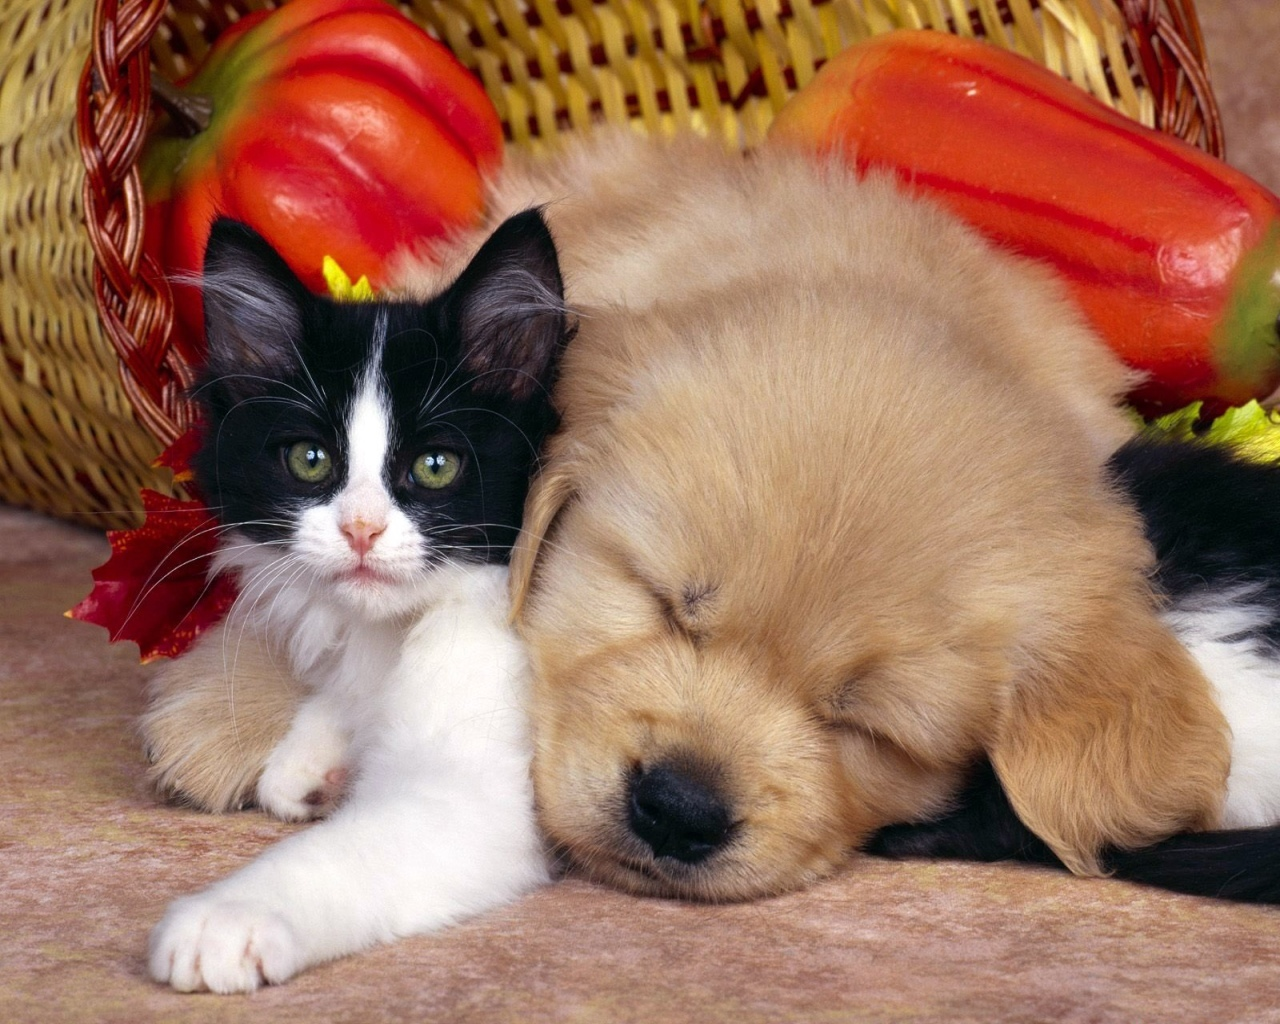 11107 download wallpaper Animals, Cats, Dogs screensavers and pictures for free